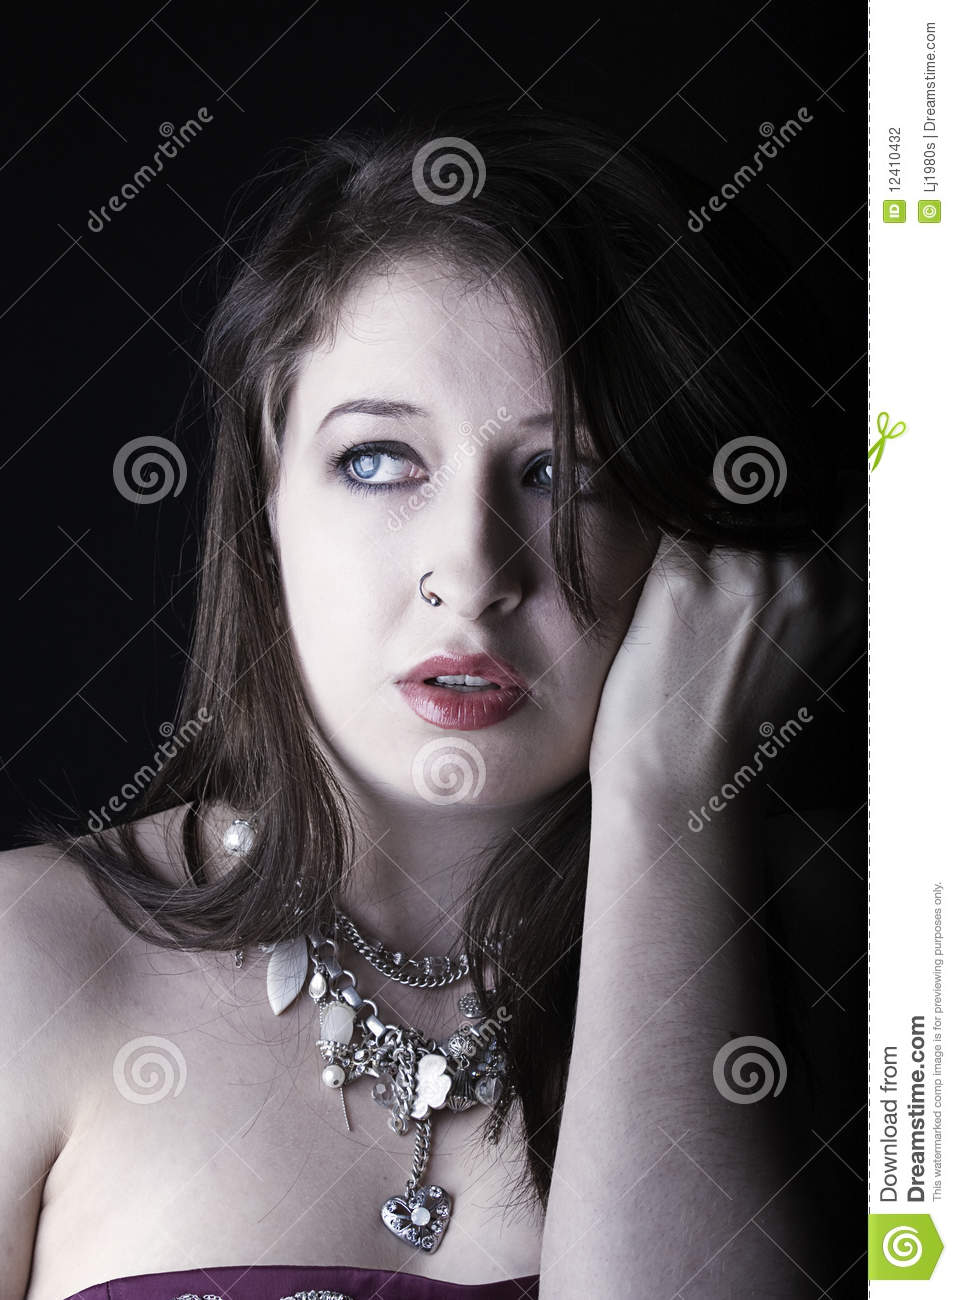 Pic Of Beautiful Shining Porcellain Kitchen Floors Tiles: Beautiful Girl Looks Nervous Stock Photo